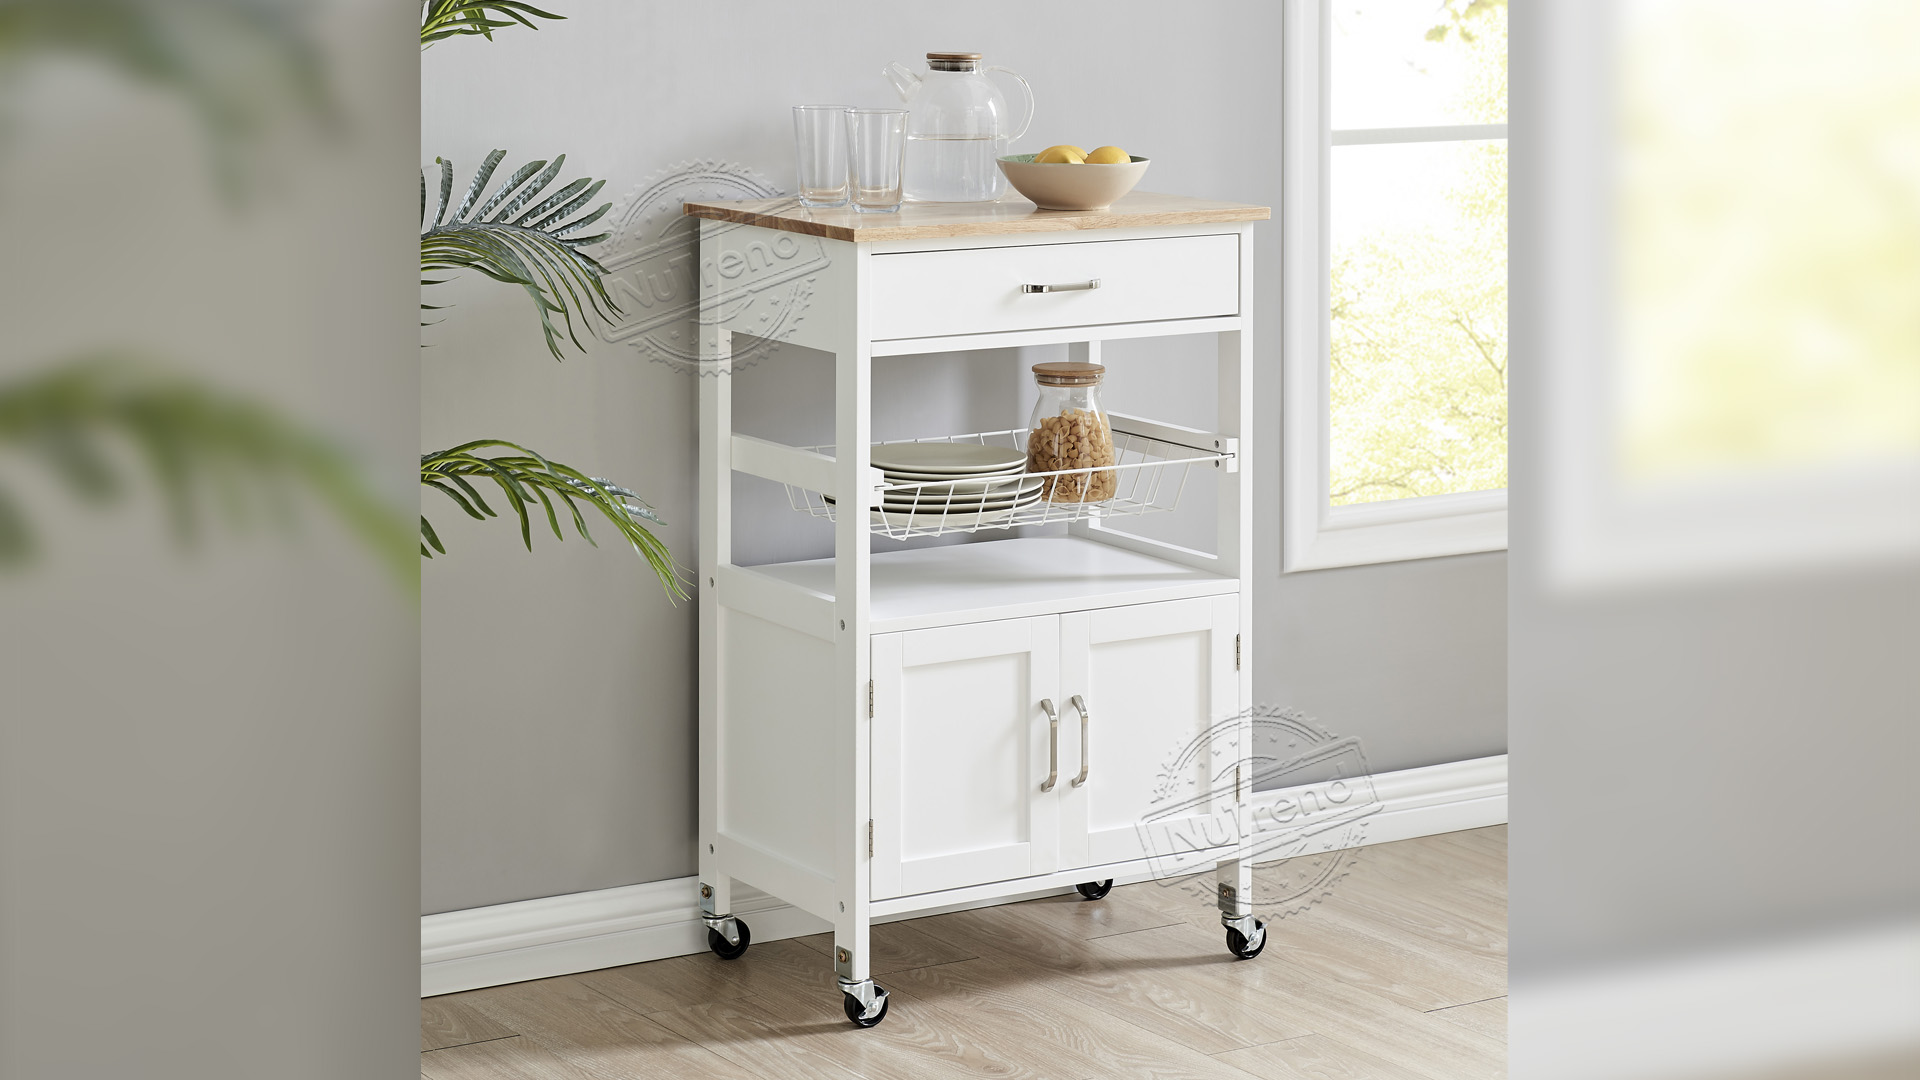 Portable Kitchen Island Small Rolling Kitchen Cart with Wire Baskets Veg Trolley 102201